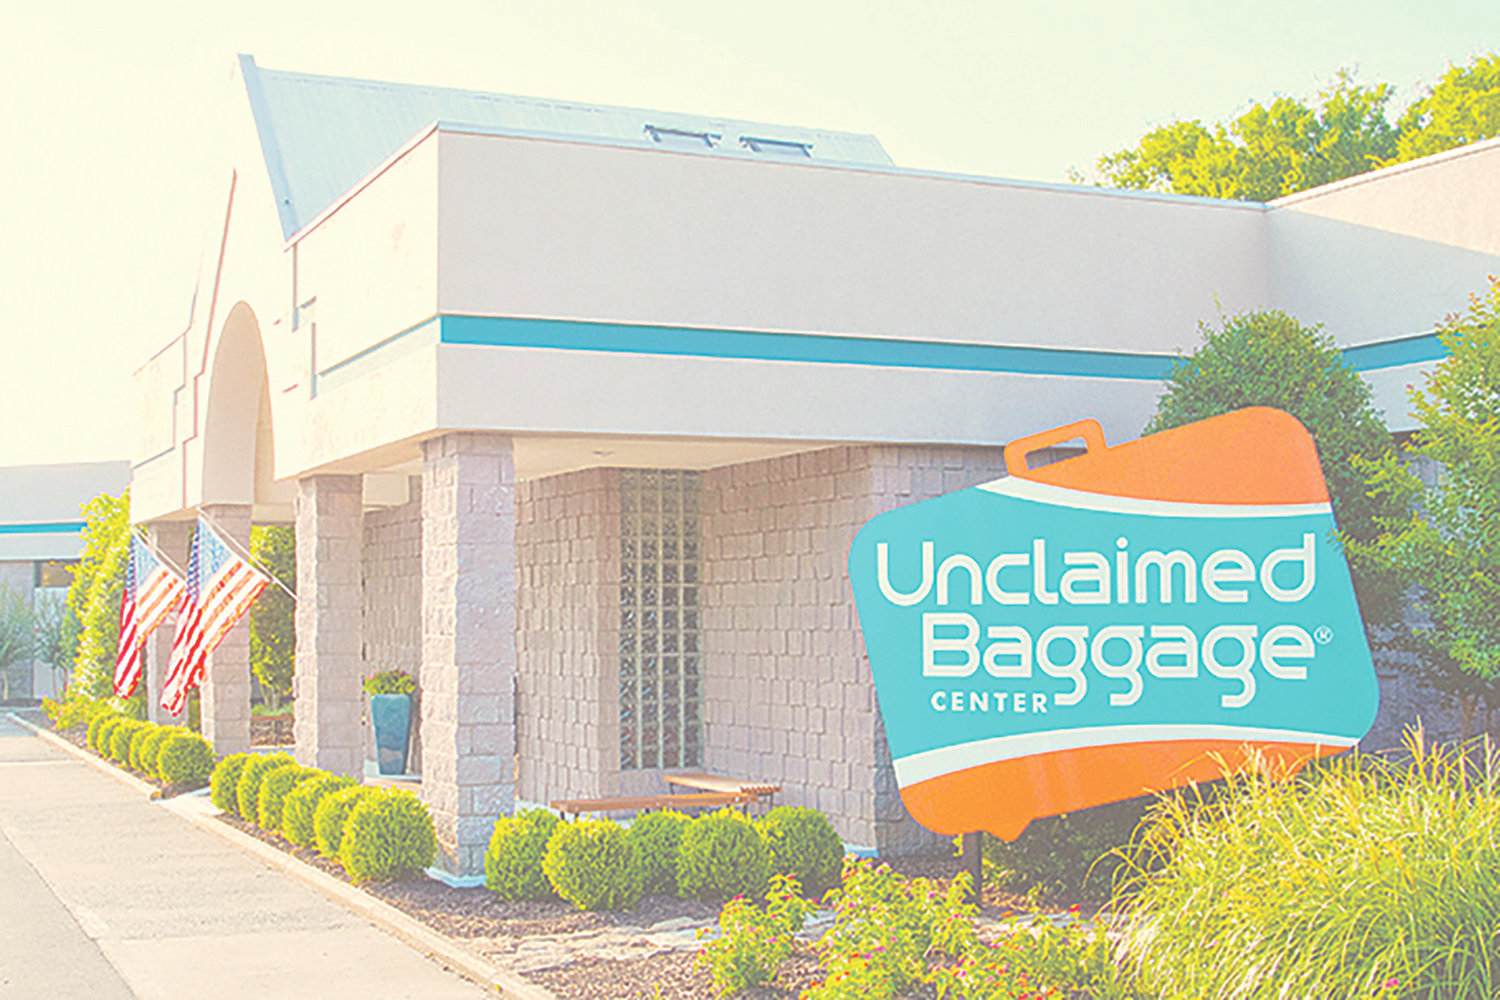 Fans of Unclaimed Baggage can now shop online at www.unclaimedbaggage.com/pages/shop.